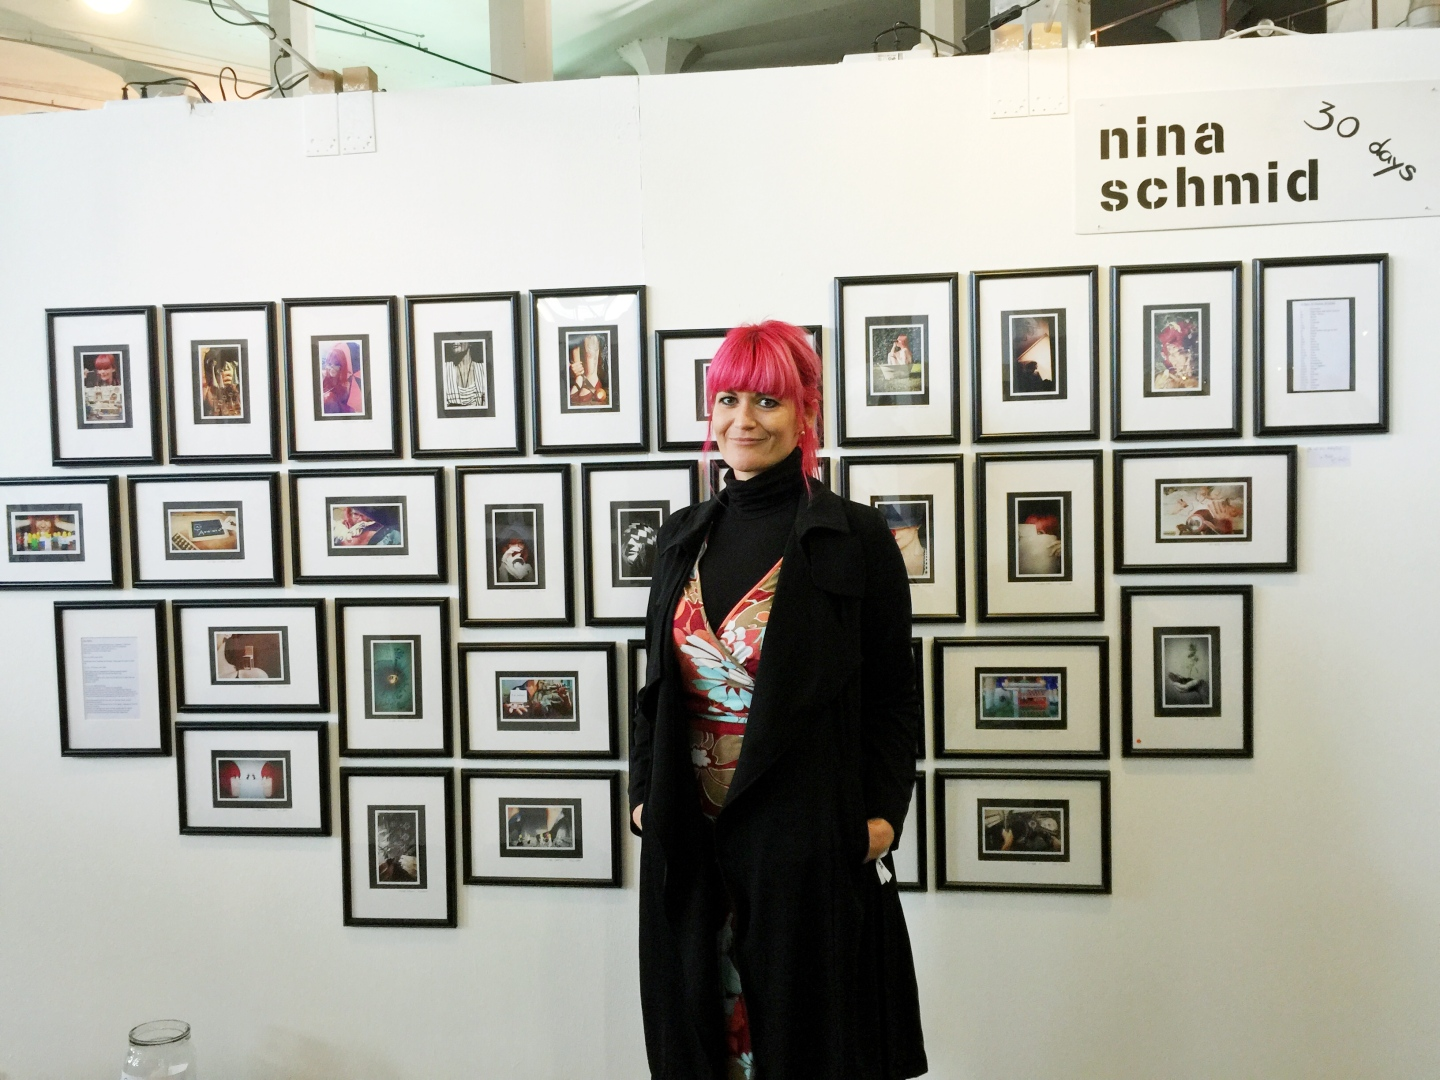 Munich Artists nina schmid at stroke ltd